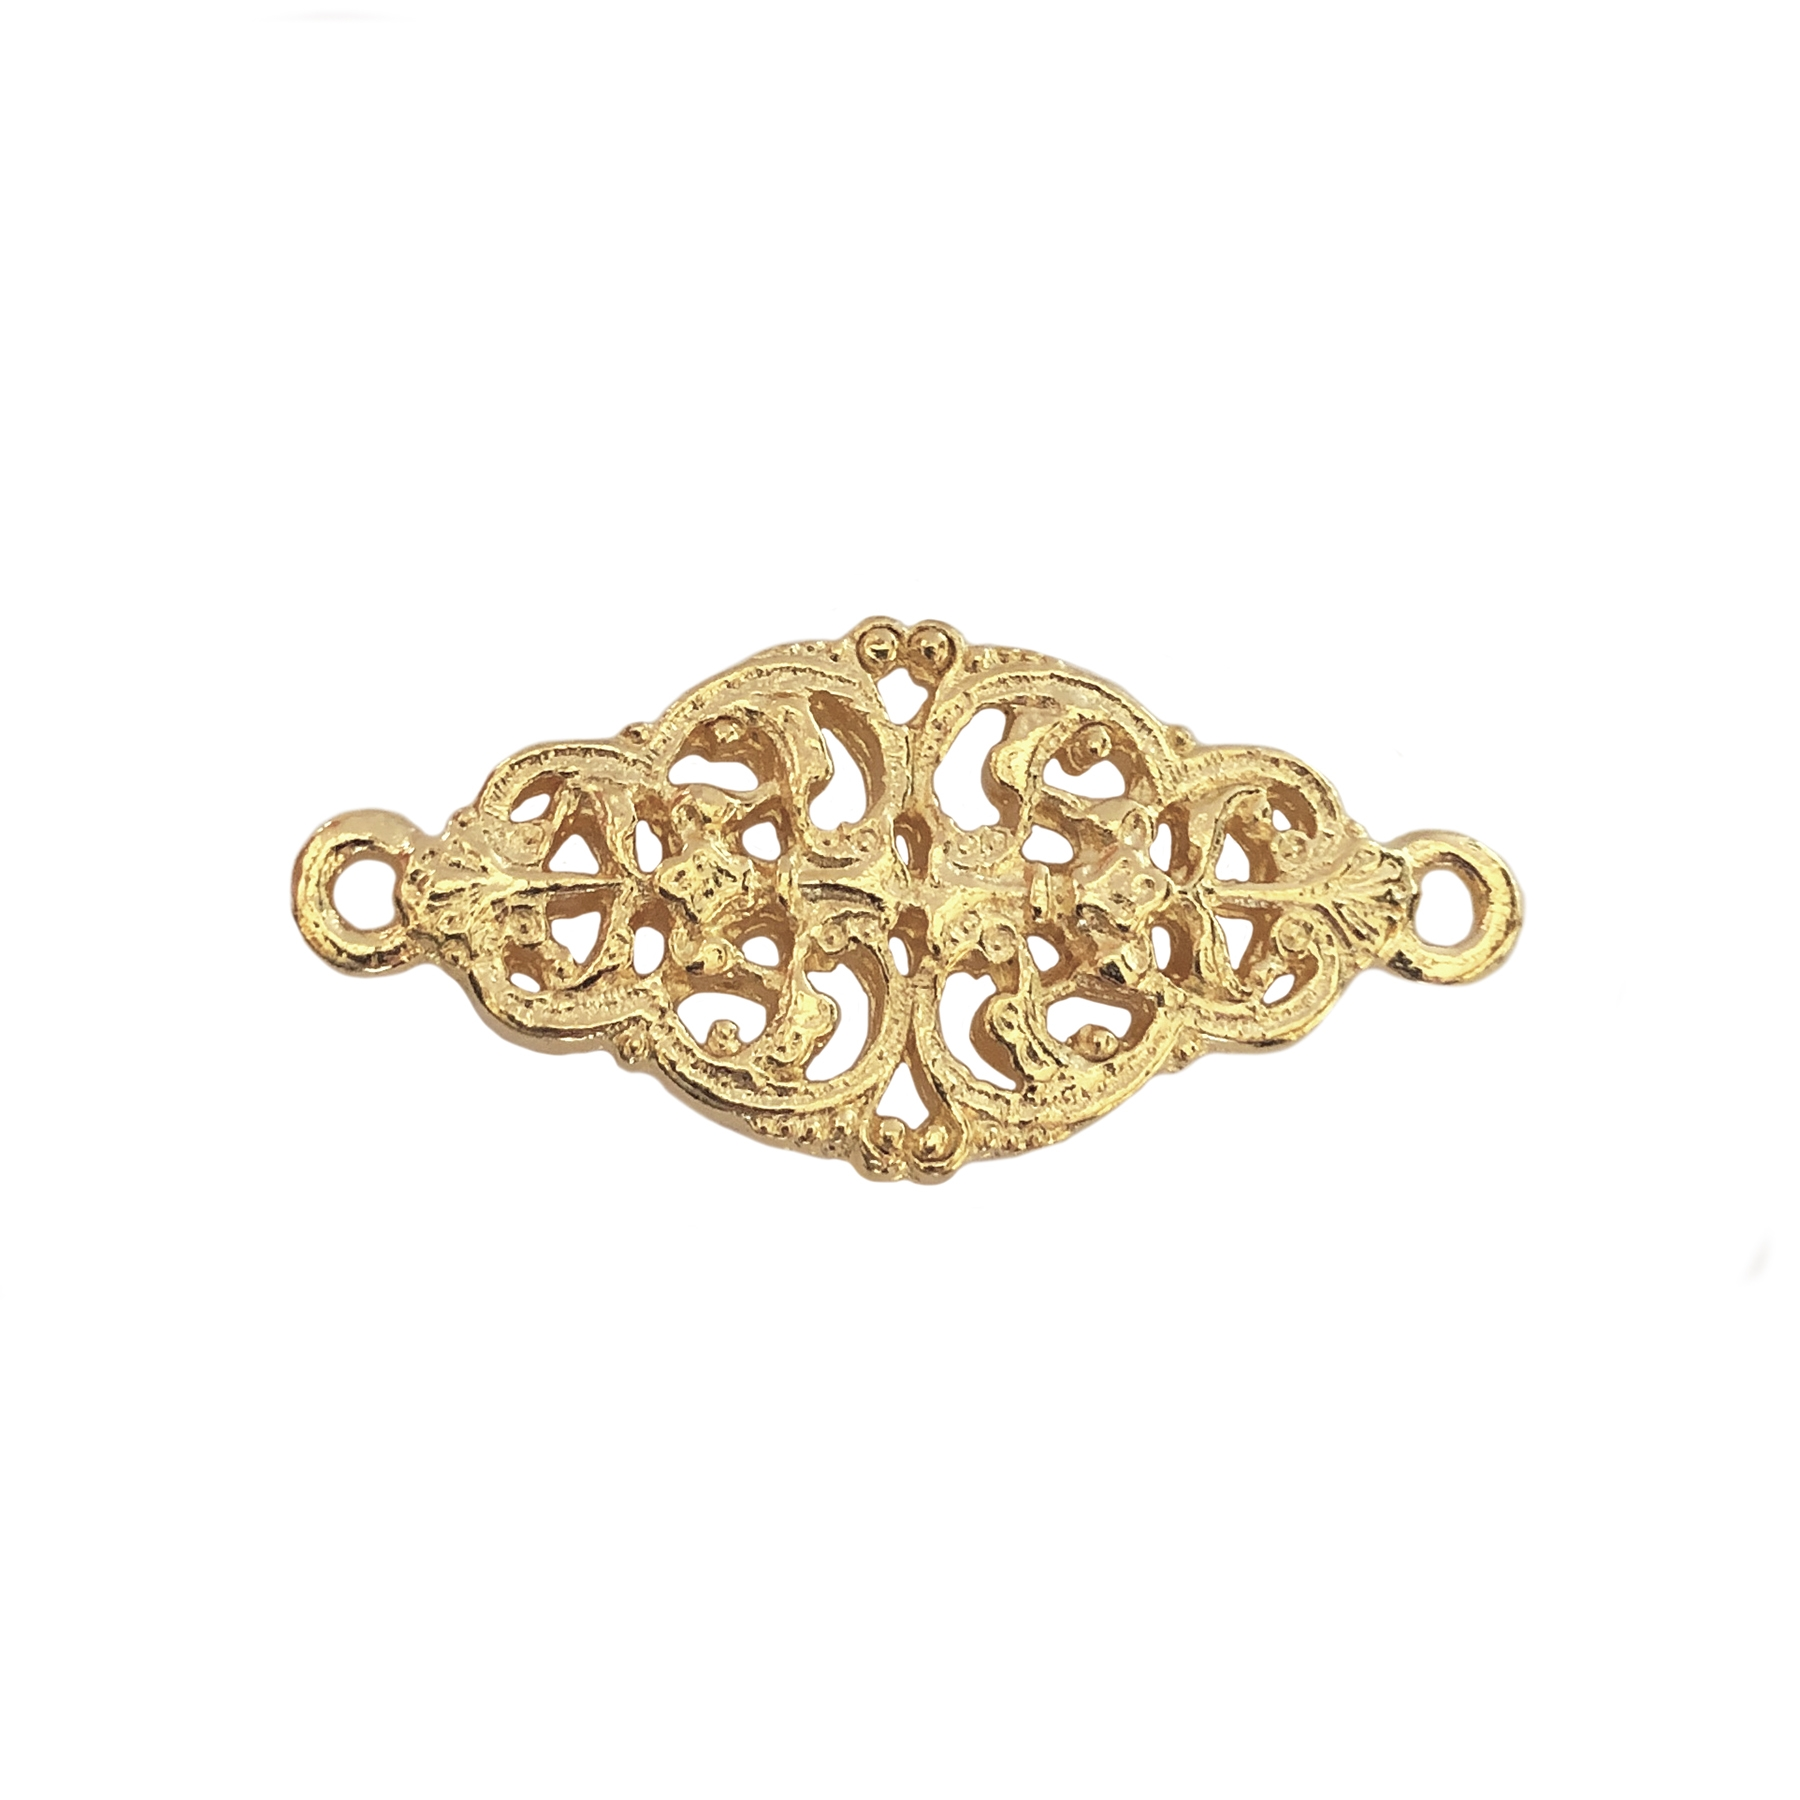 Victorian filigree connector, 22K gold finish pewter, connector, jewelry connector, bracelet connector, filigree connector, gold, gold finish, Victorian style, 22K gold, lead free pewter, US made, nickel free, B'sue by 1928, B'sue Boutiques, 16x34mm, 0435